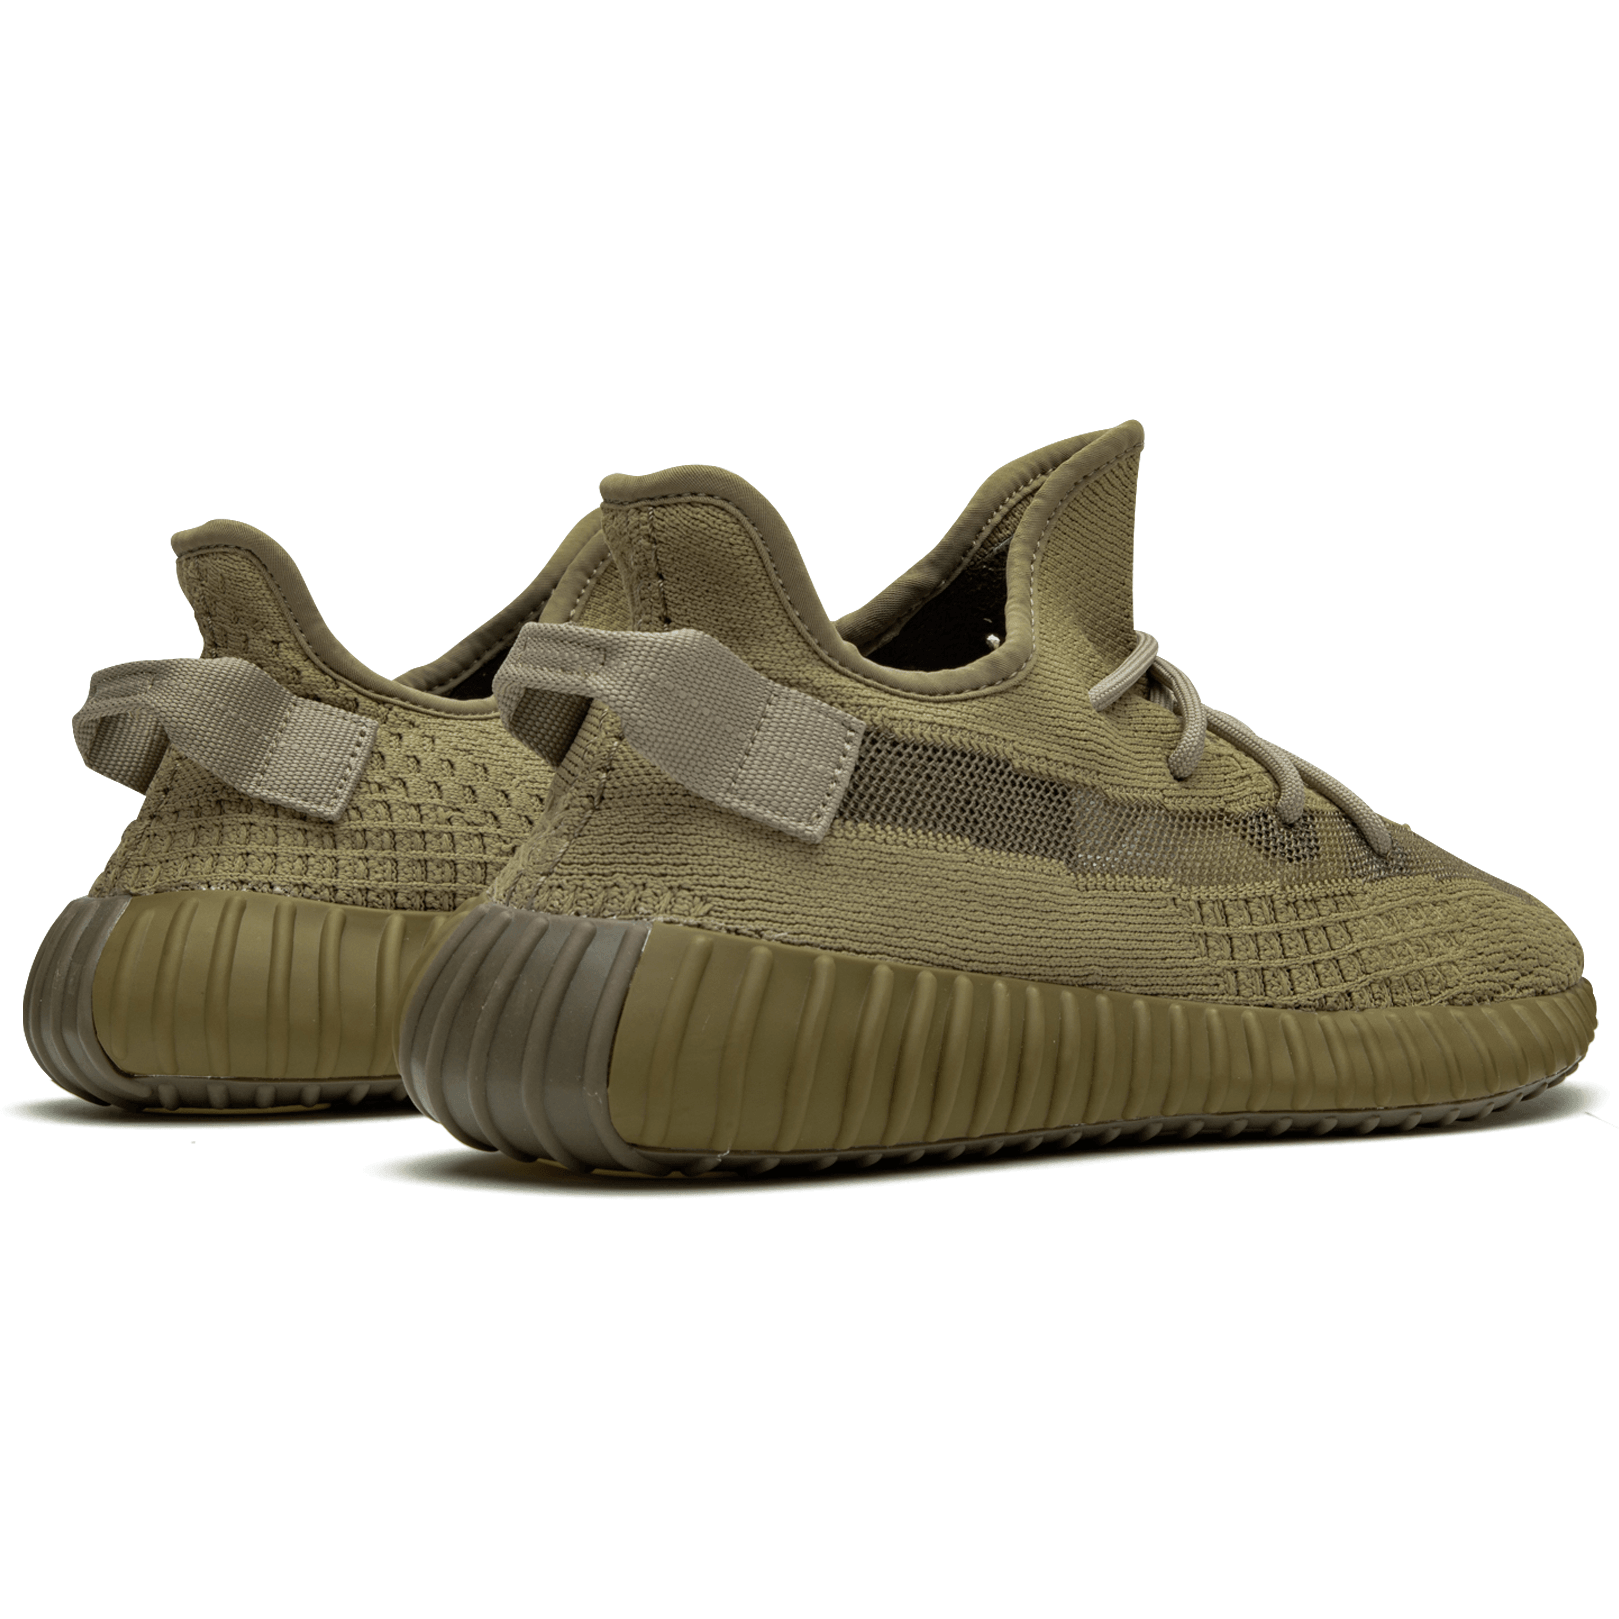 YEEZY Boost 350 V2 - Earth